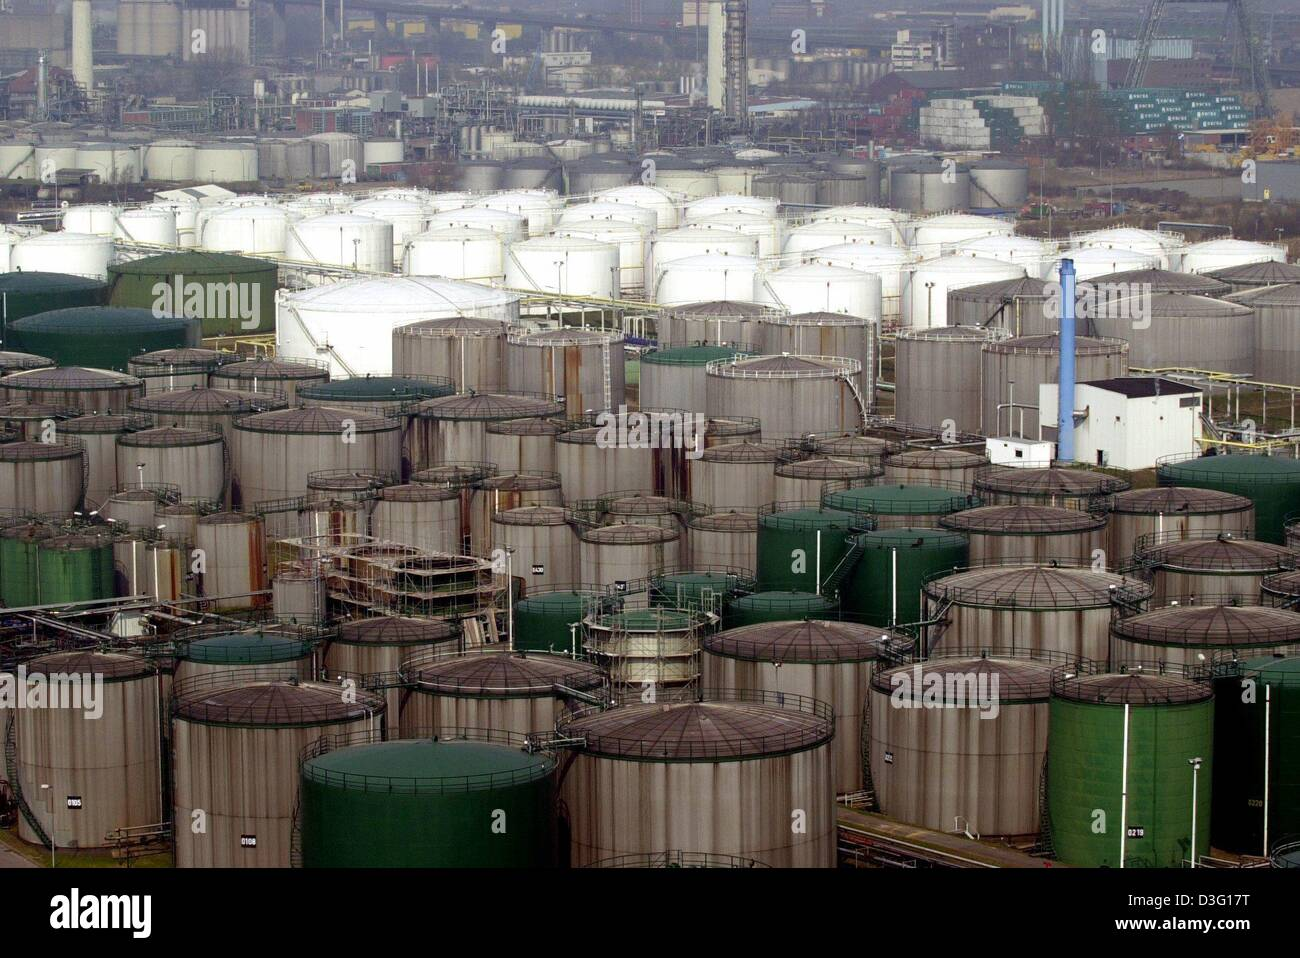 (dpa) - Giant tanks filled with petrol and crude oil stand in a section of the harbour in Hamburg, 28 March 2003. - Stock Image